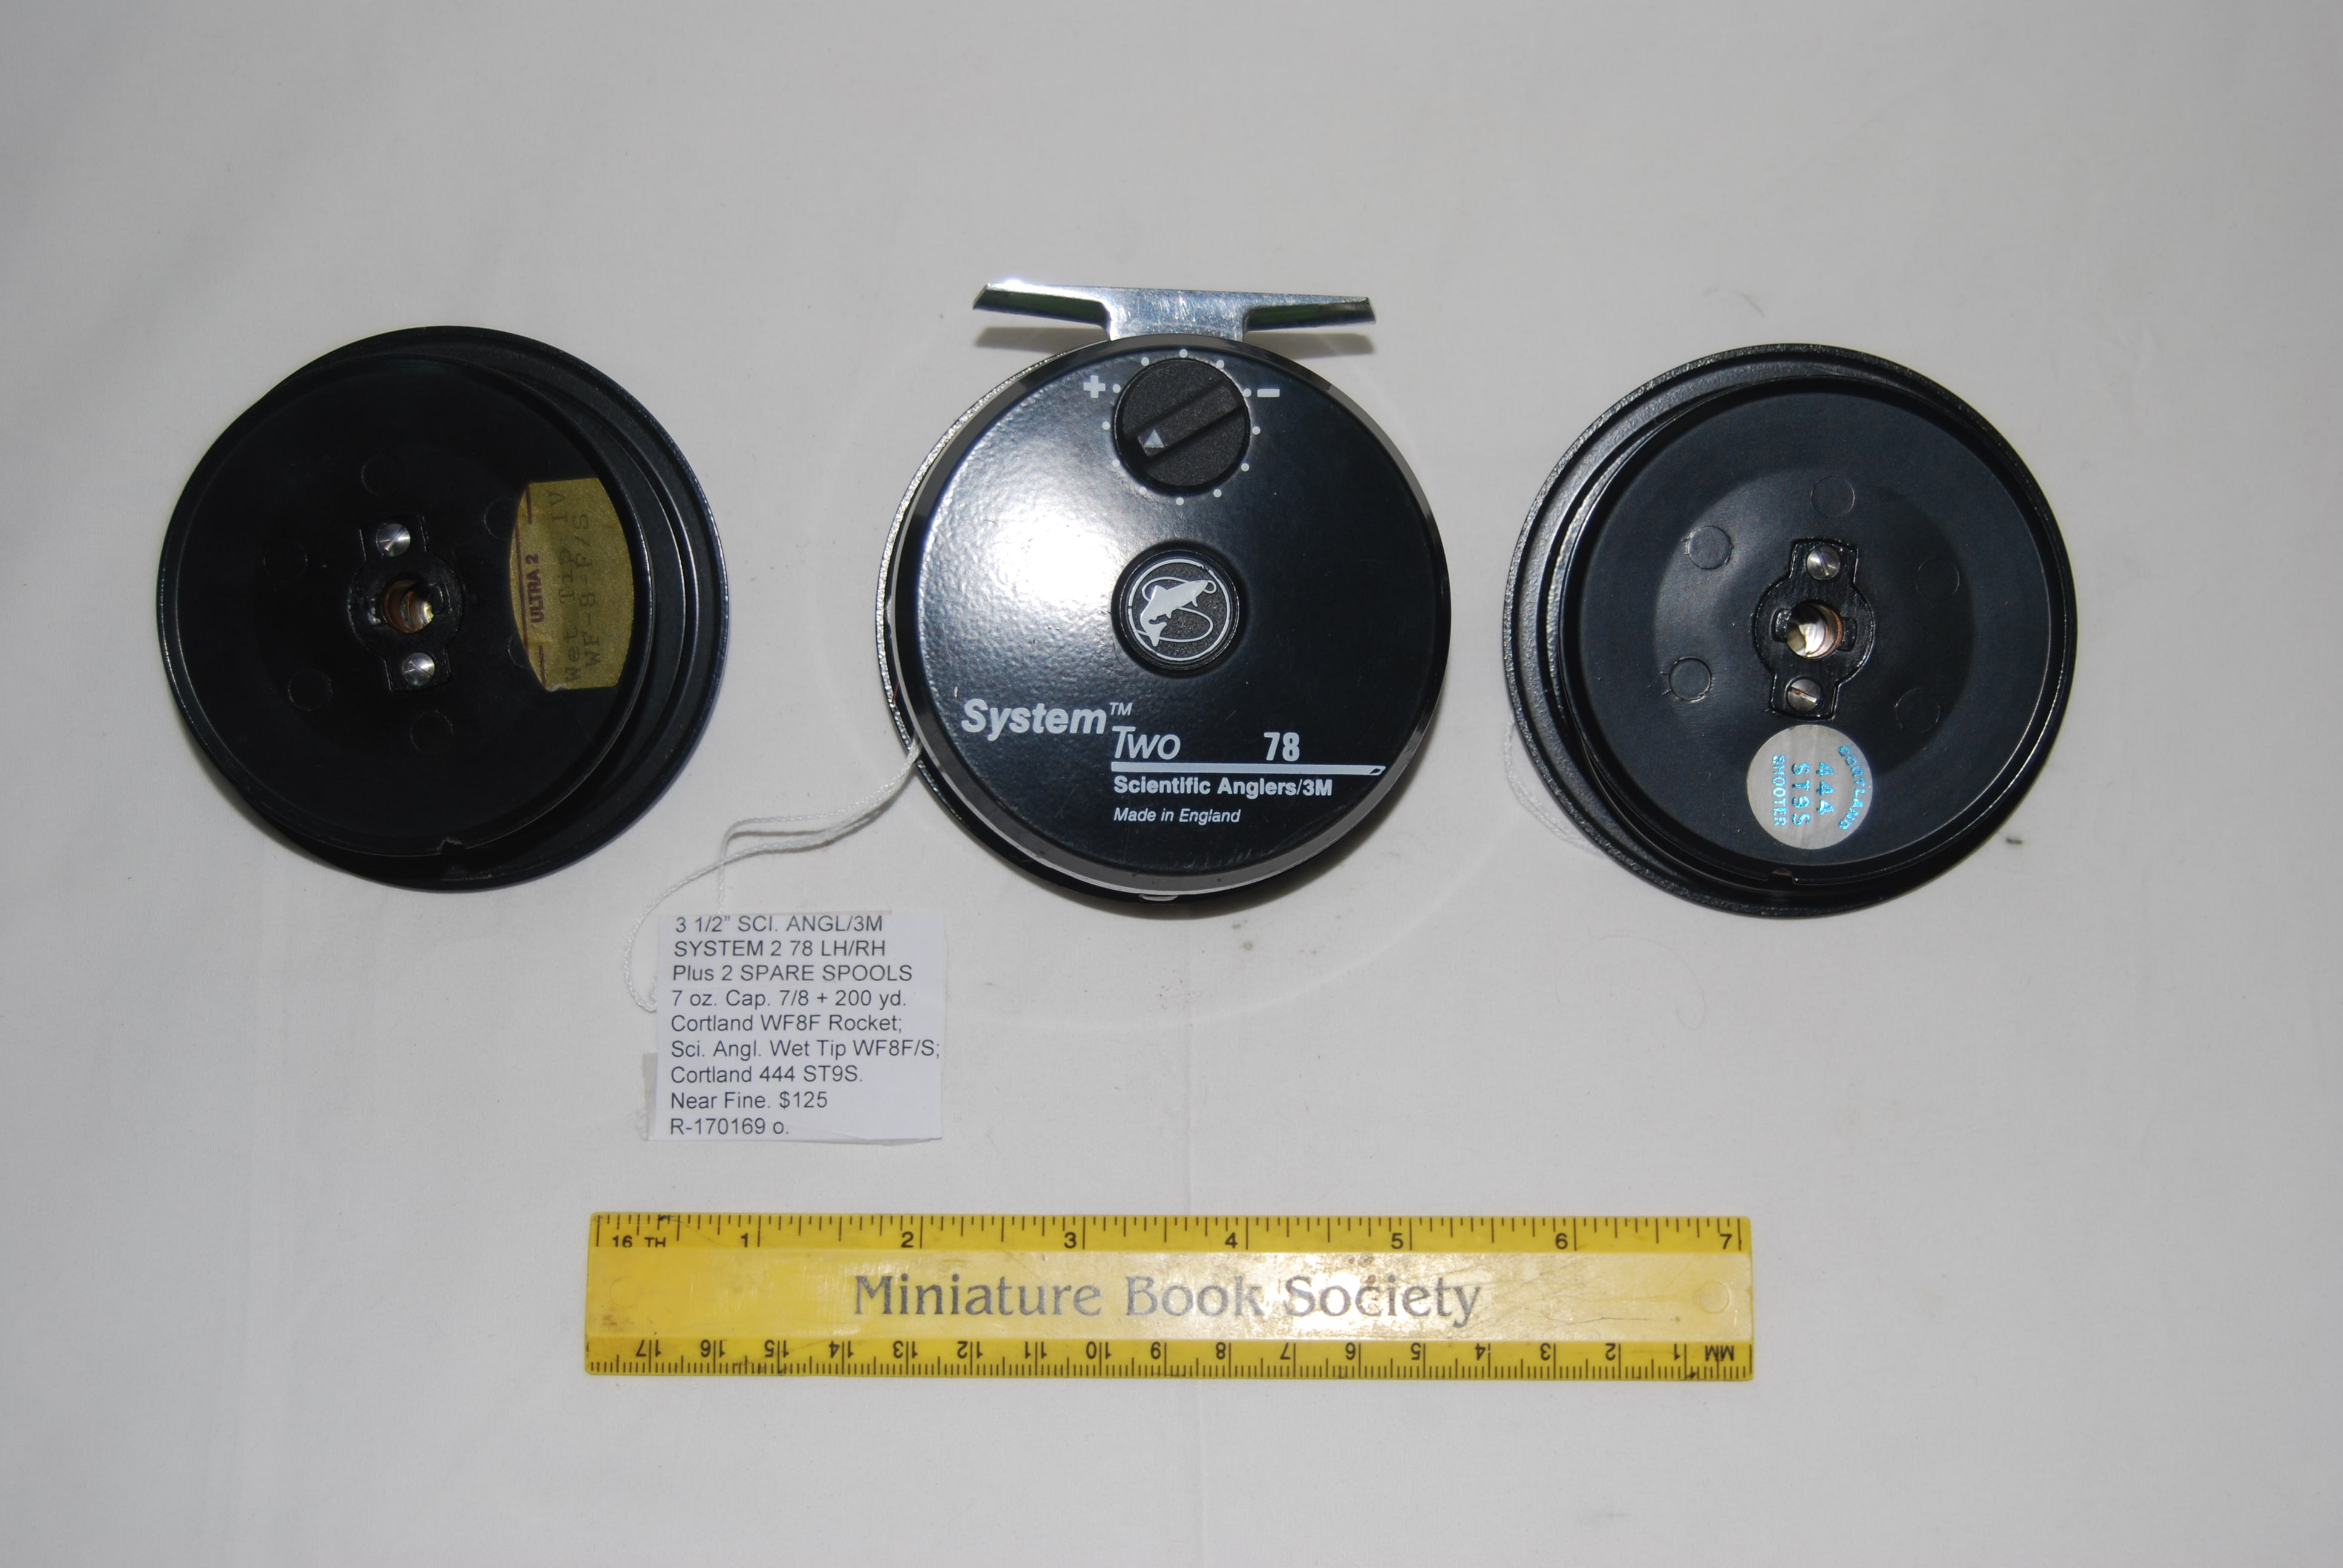 "Image for 3 ½"" SCIENTIFIC ANGLERS/3M SYSTEM TWO 78. With SPARE SPOOL. 7 oz. Cap. 7/8 line + 200 yd. 20# Micron. LH/RH"